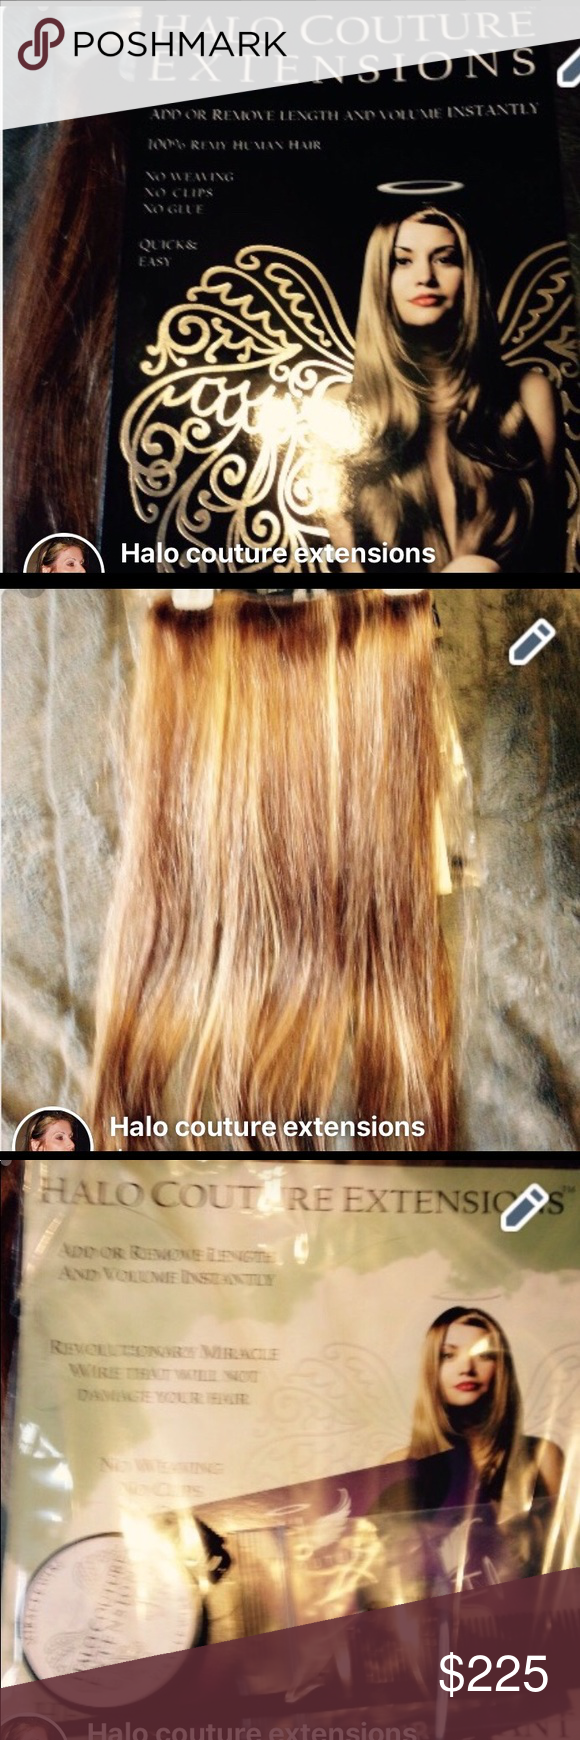 Halo Hair Extensions 24 Inches Length Halo Hair Hair Extensions